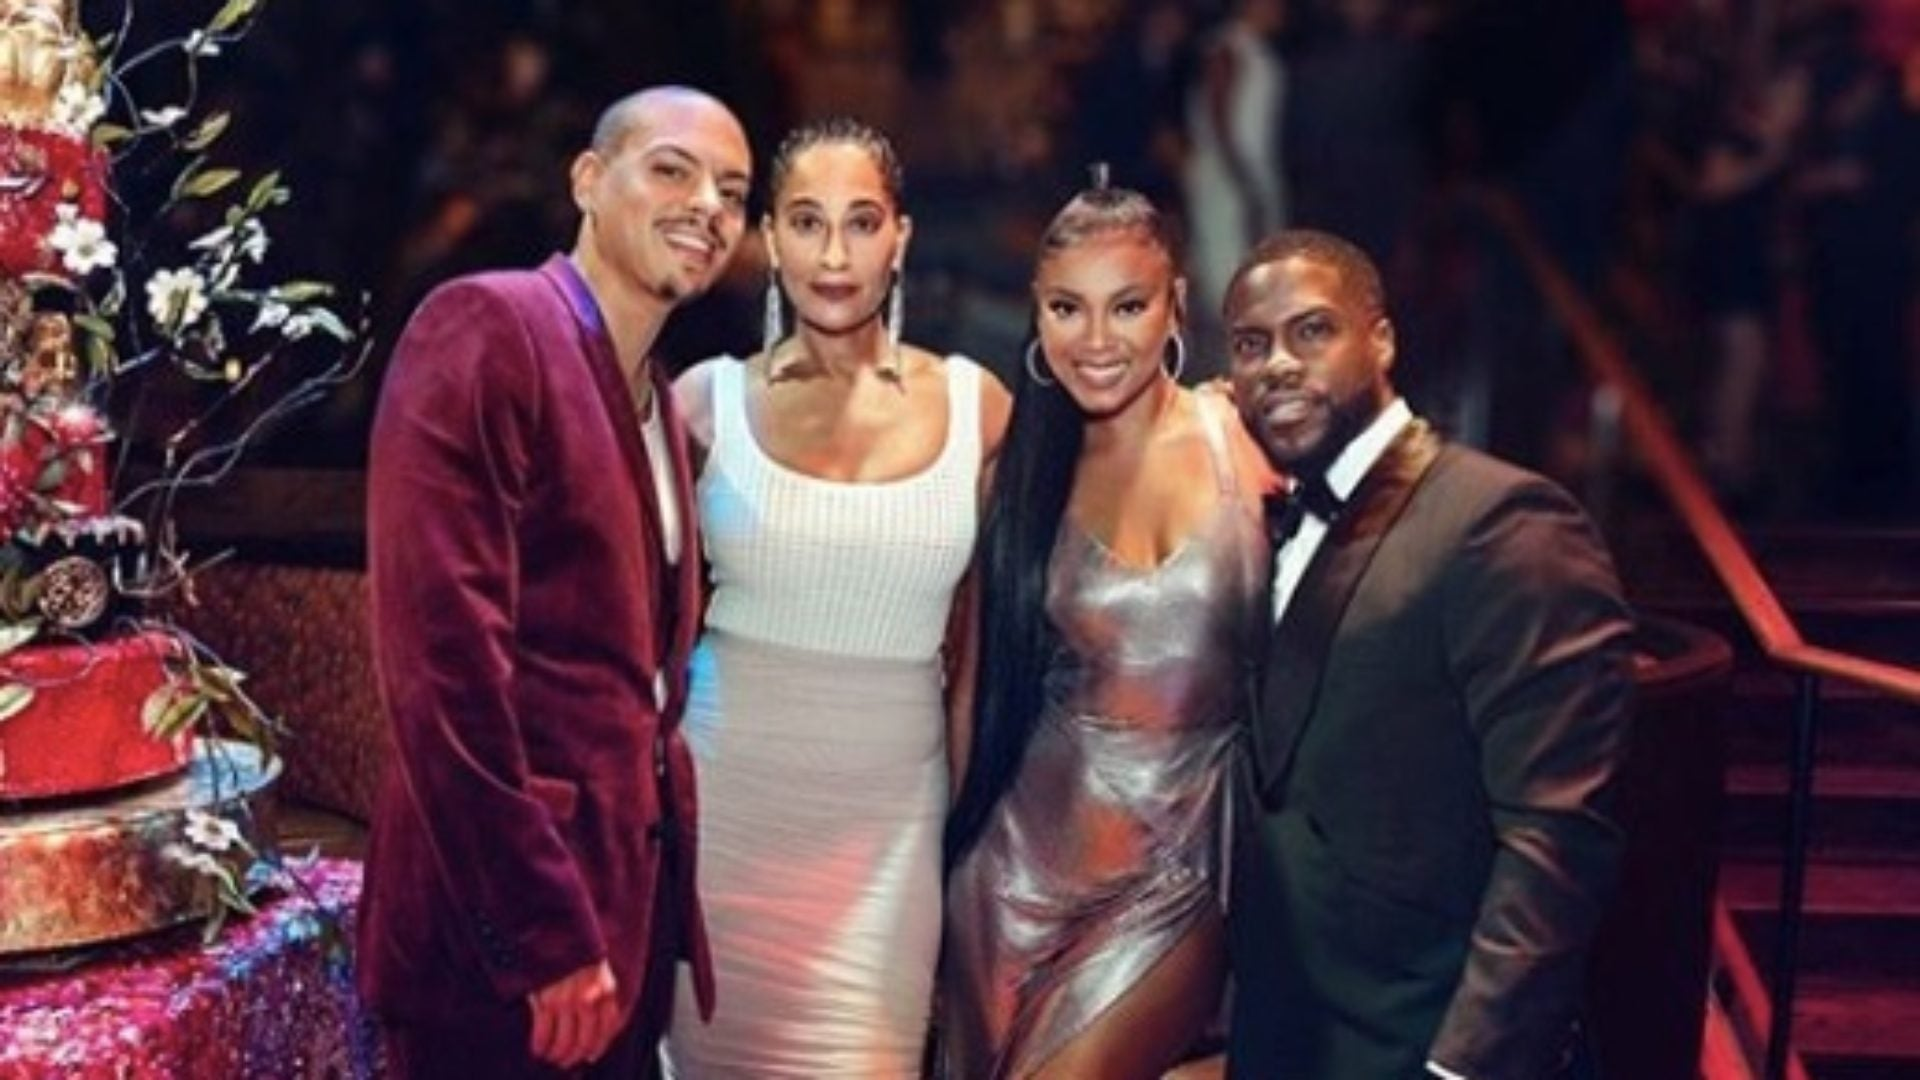 The Stars Were Out To Celebrate Kevin Hart's 40th Birthday